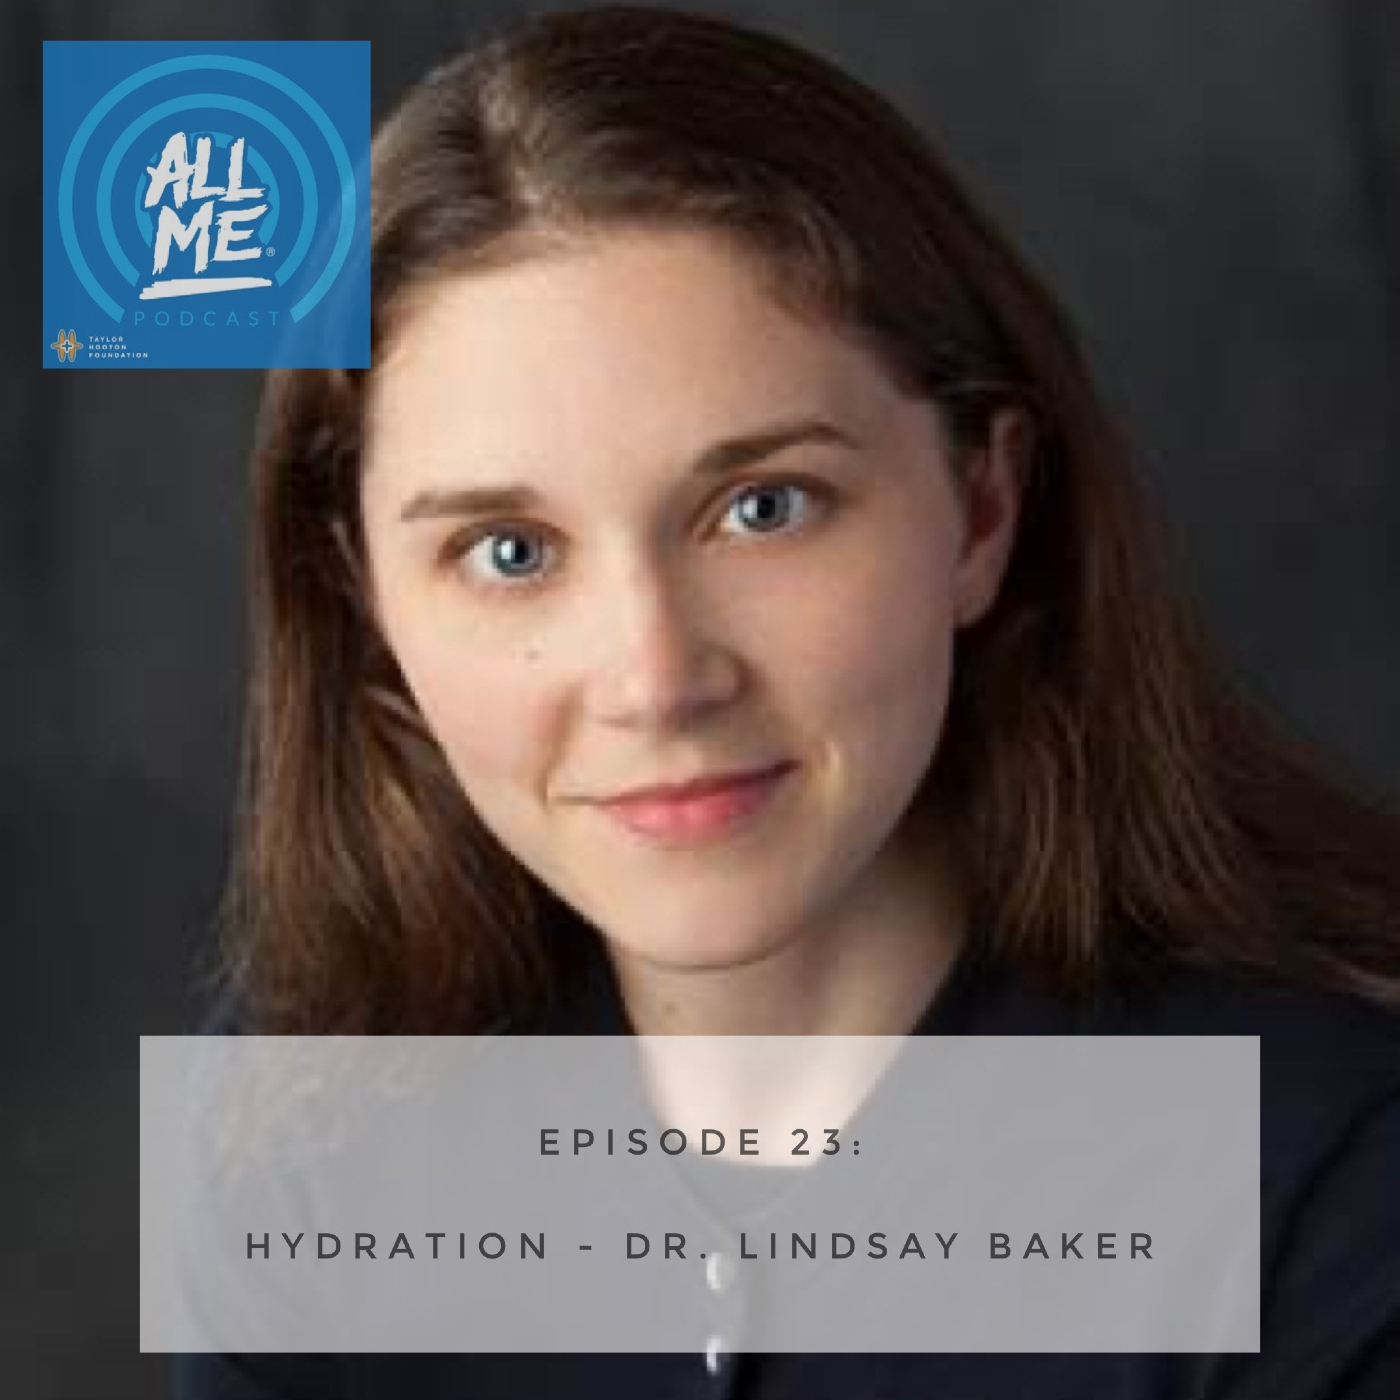 Episode 23: Hydration - Dr. Lindsay Baker